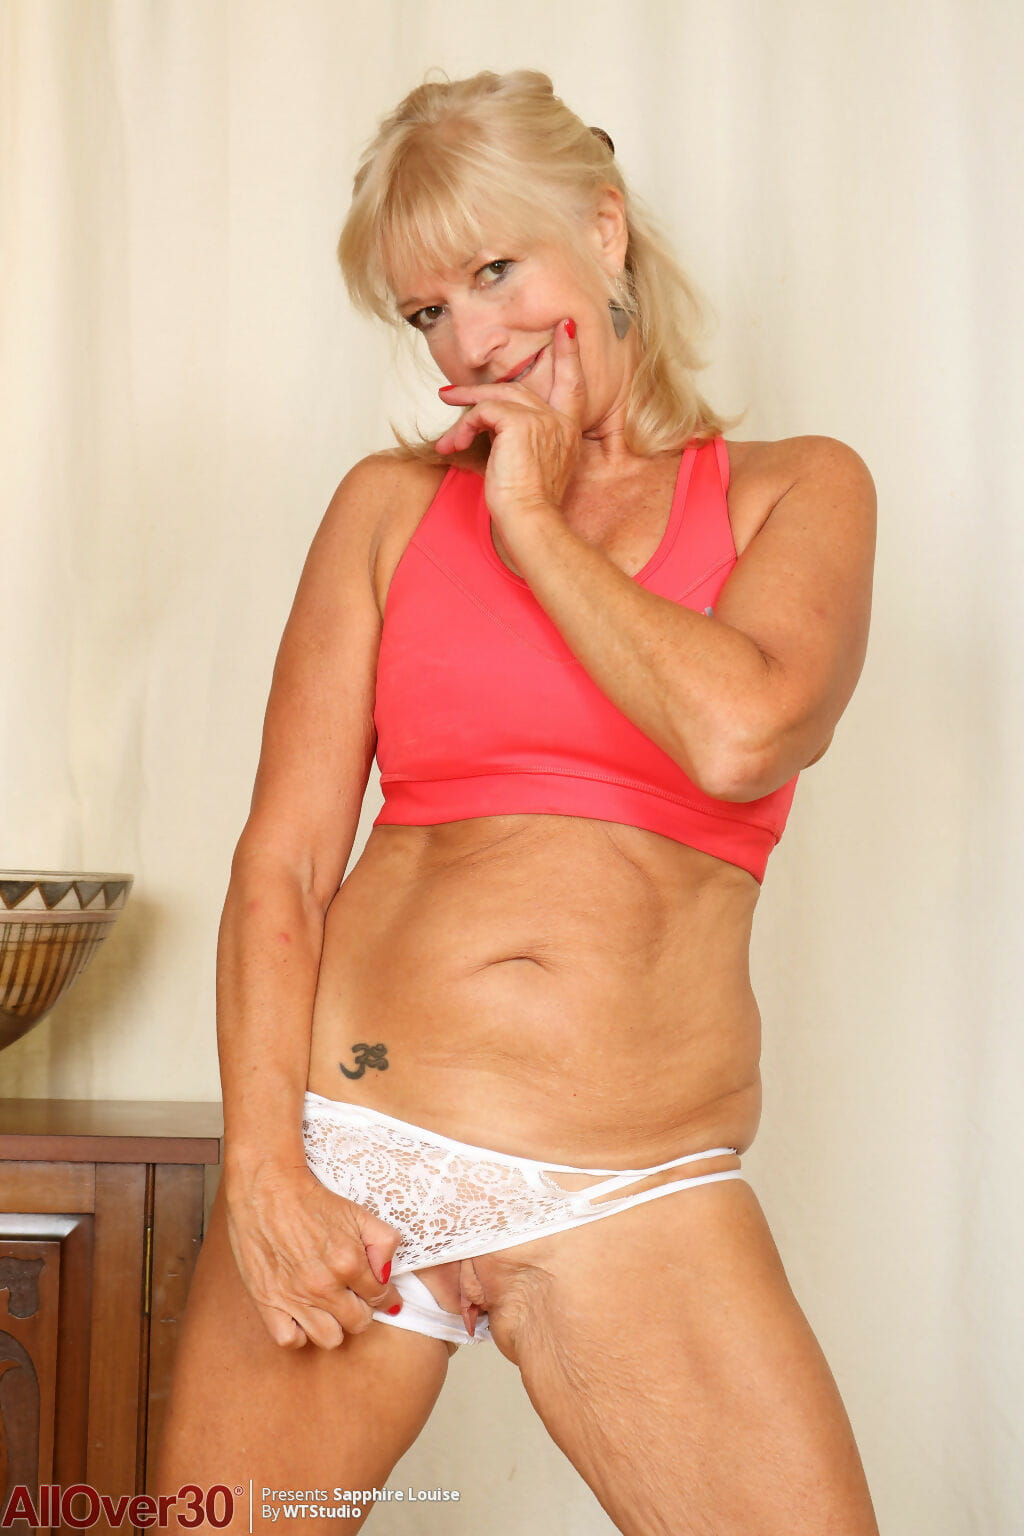 Sapphire louise widening in the naked - part 1692